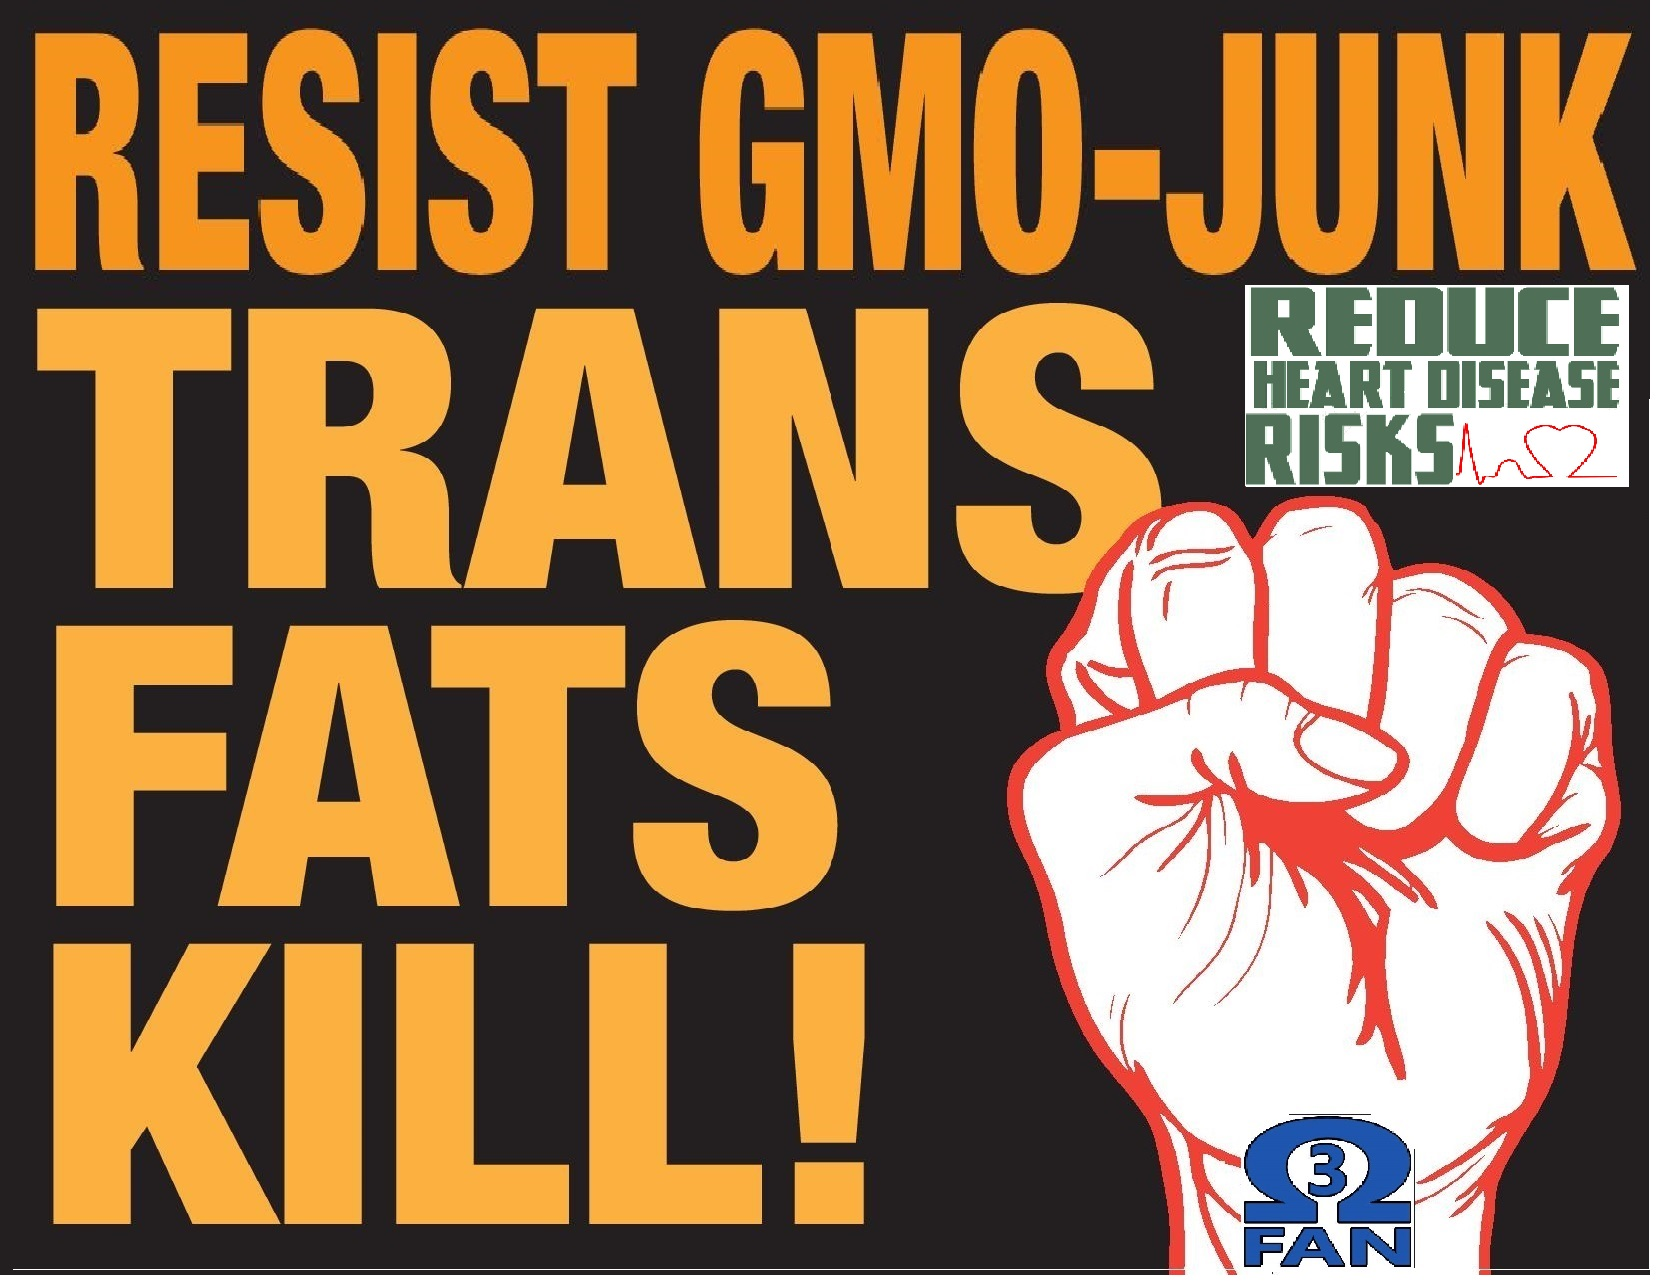 Resist GMO-Junk Trans-fats Kill